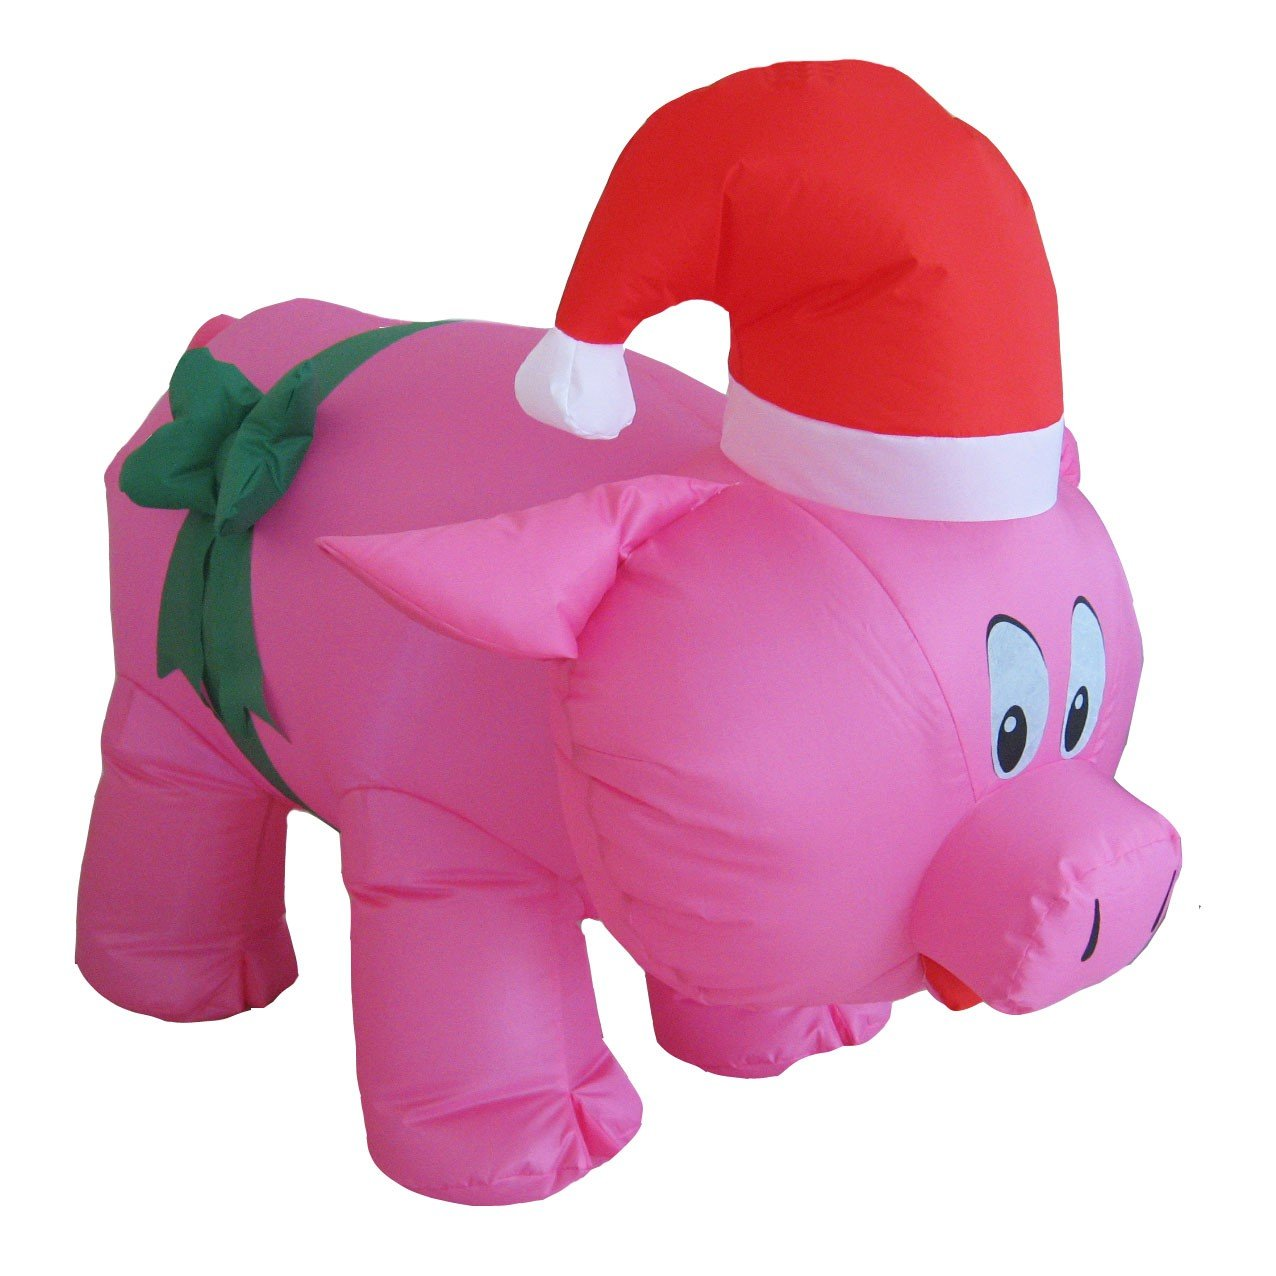 Santa's Boutique Christmas Self Inflating Illuminated Blow-Up Yard Decorations (Pink Pig 3 Ft 6 Inches Tall) by Santa's Boutique (Image #1)